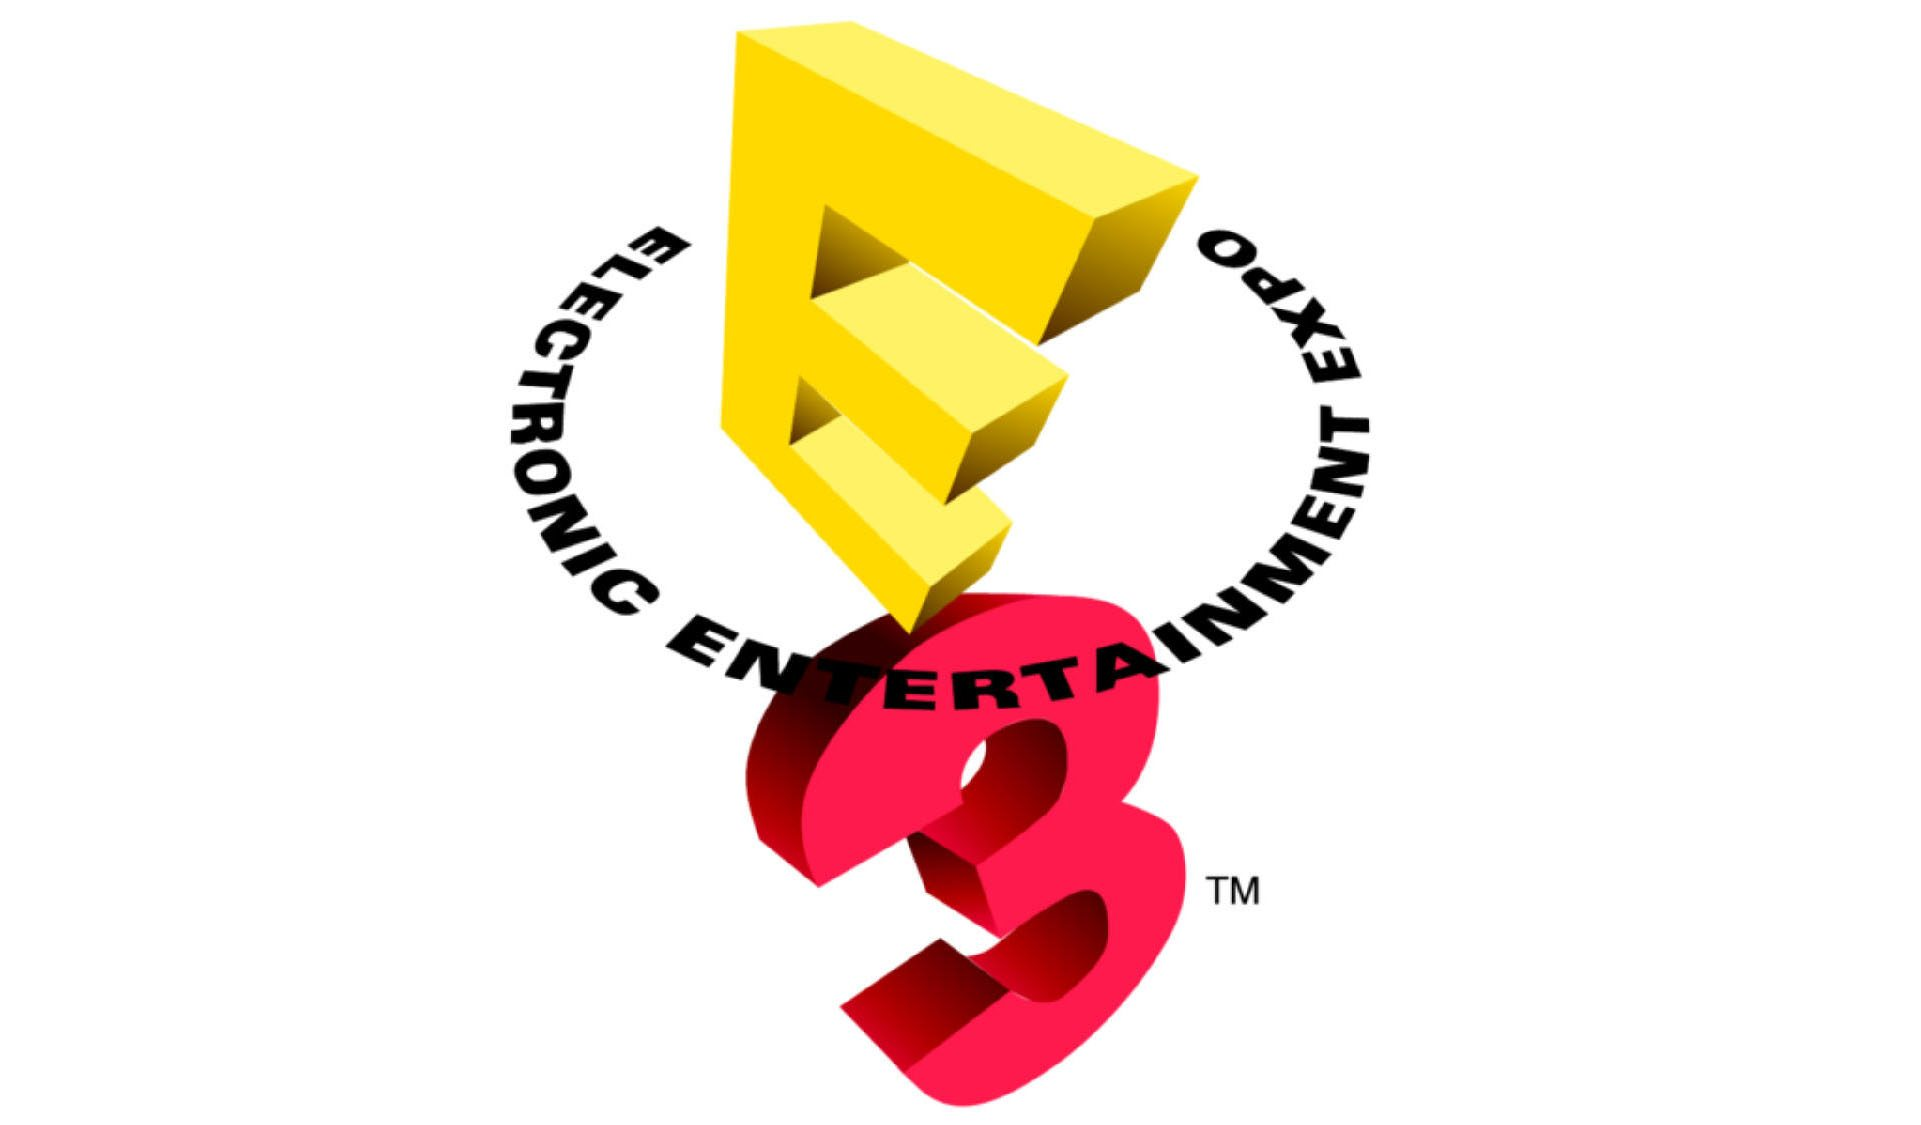 E3 Live to Debut in Los Angeles